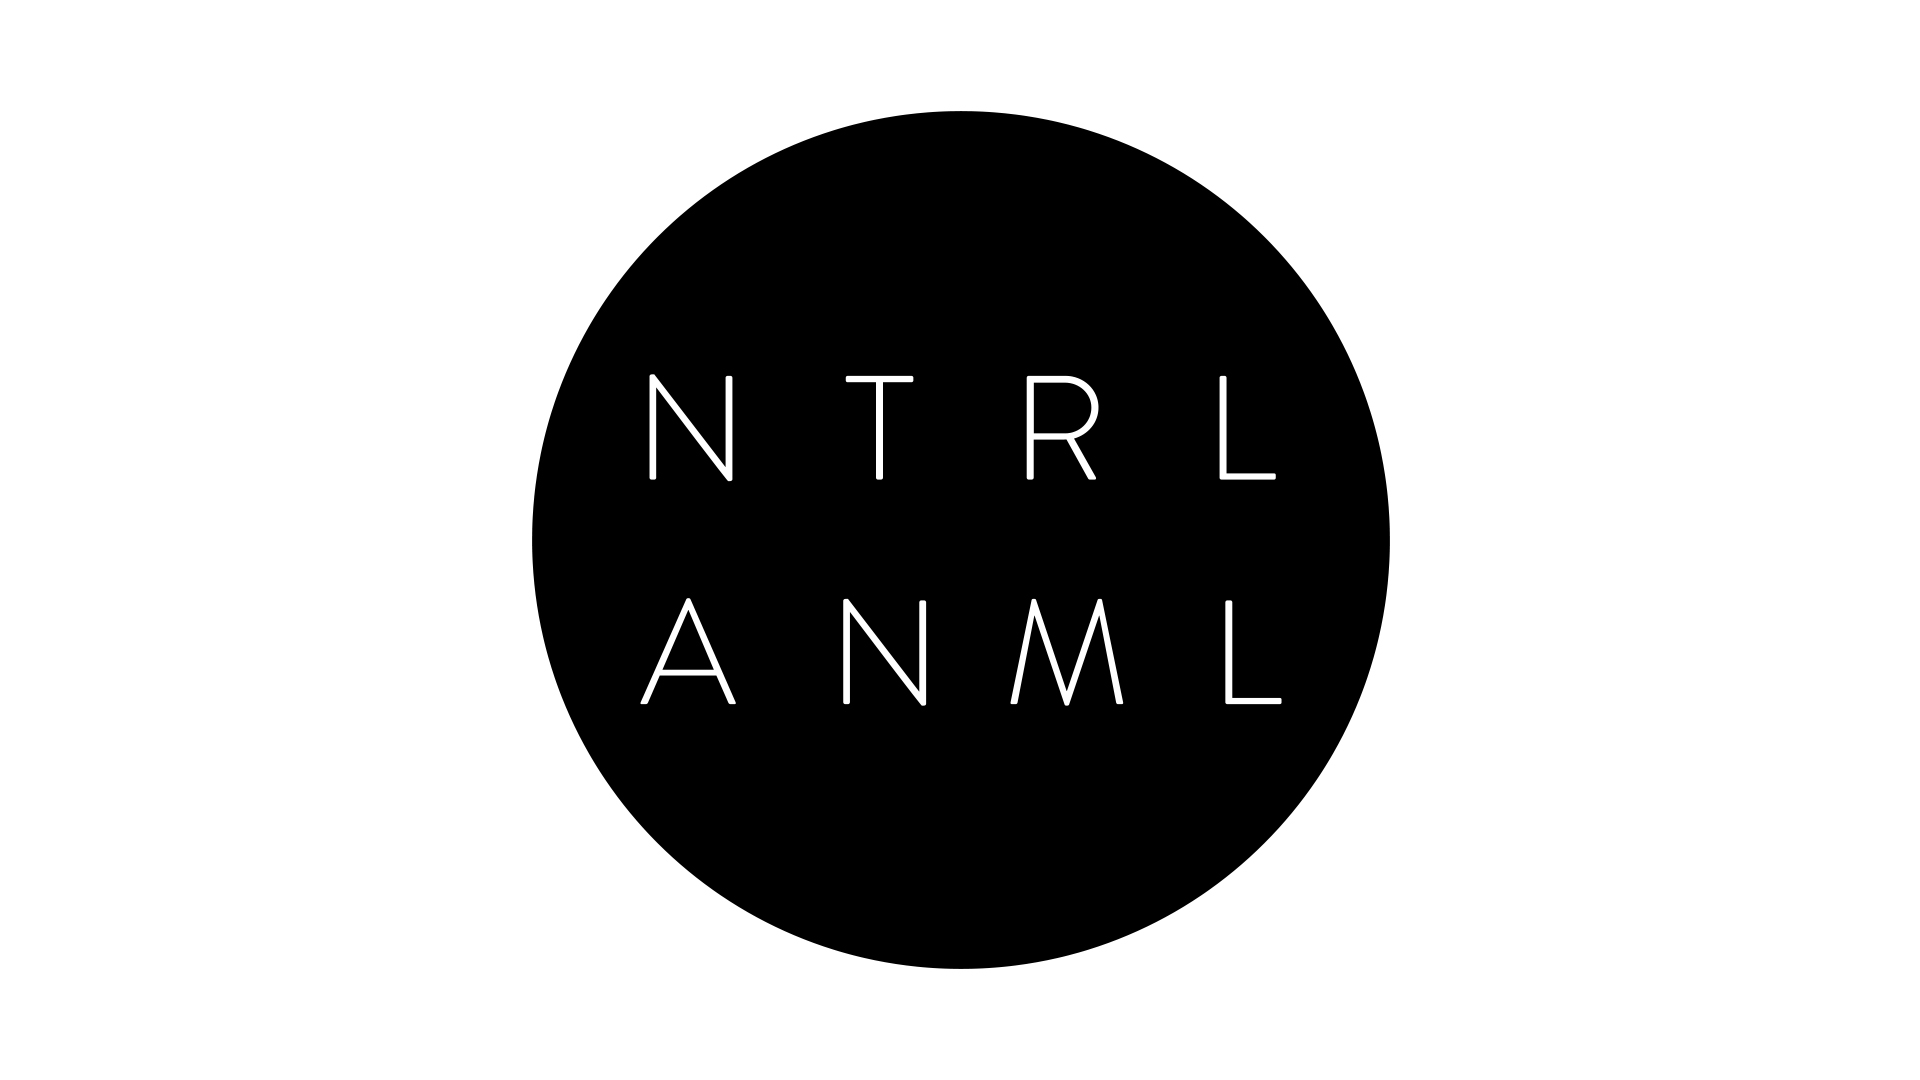 NTRL_ANML_LOGO_Full-Circle_Black_v1